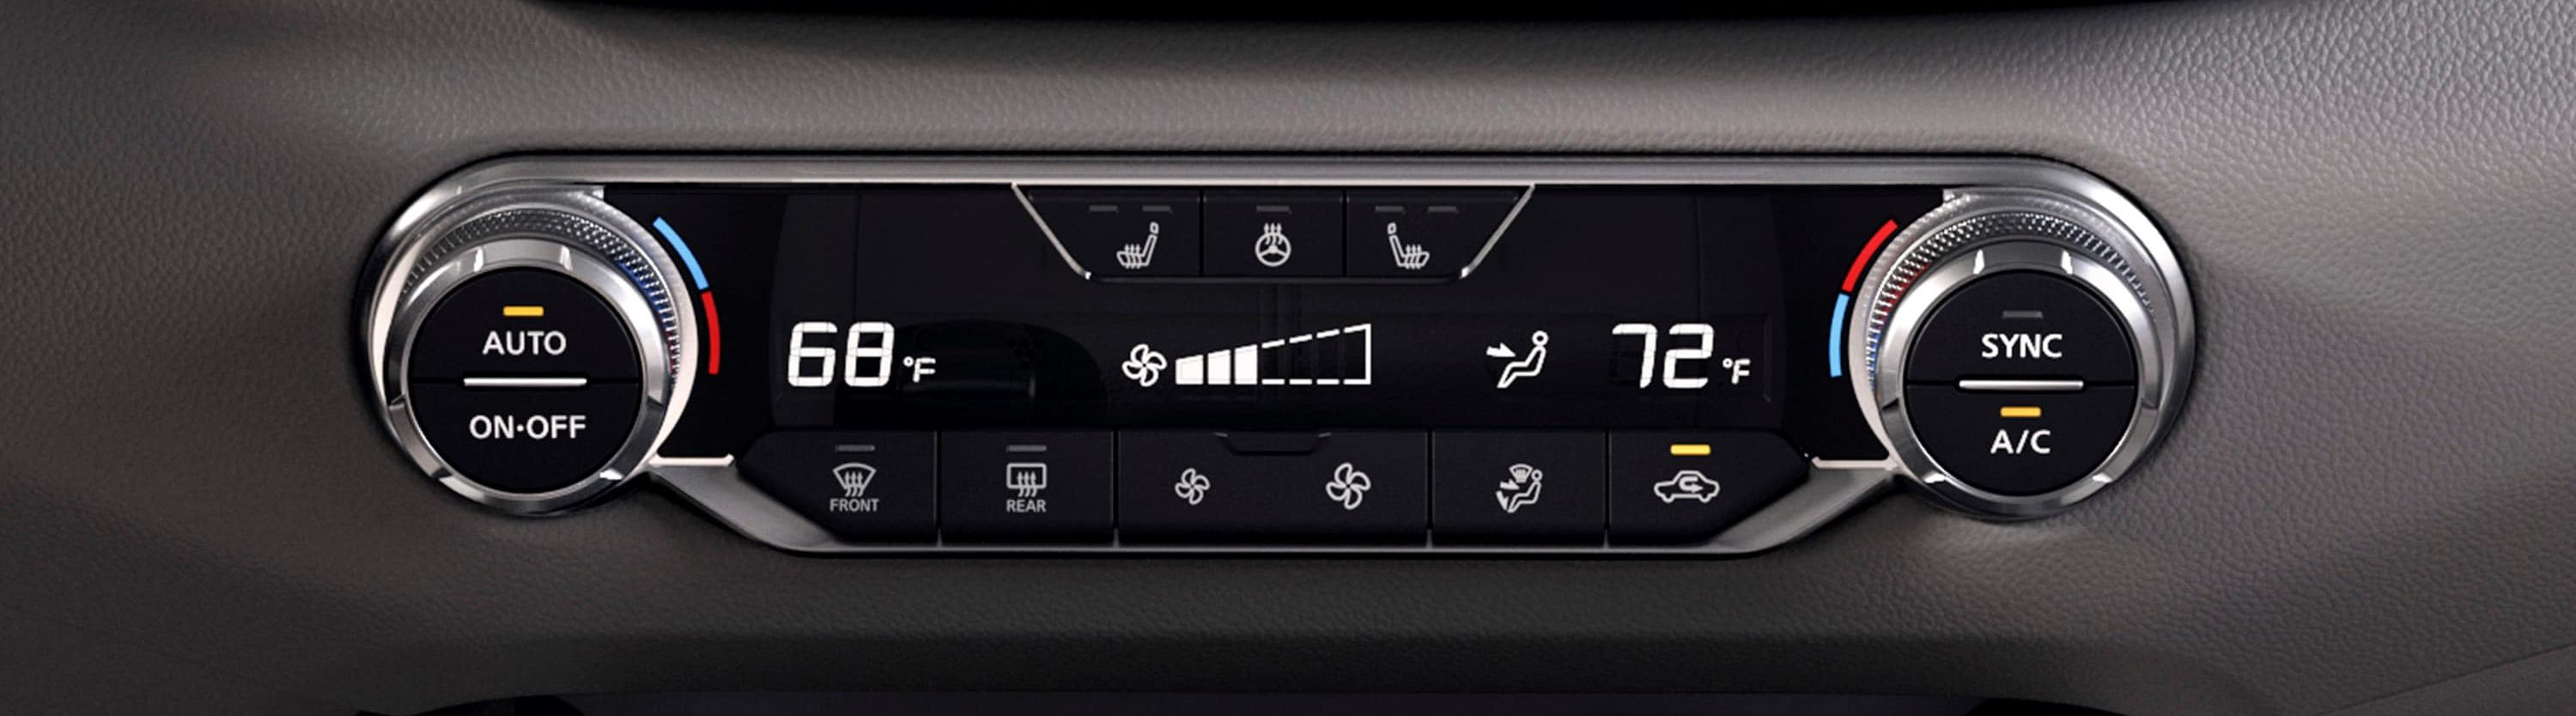 Climate Control Functions in the 2019 Altima